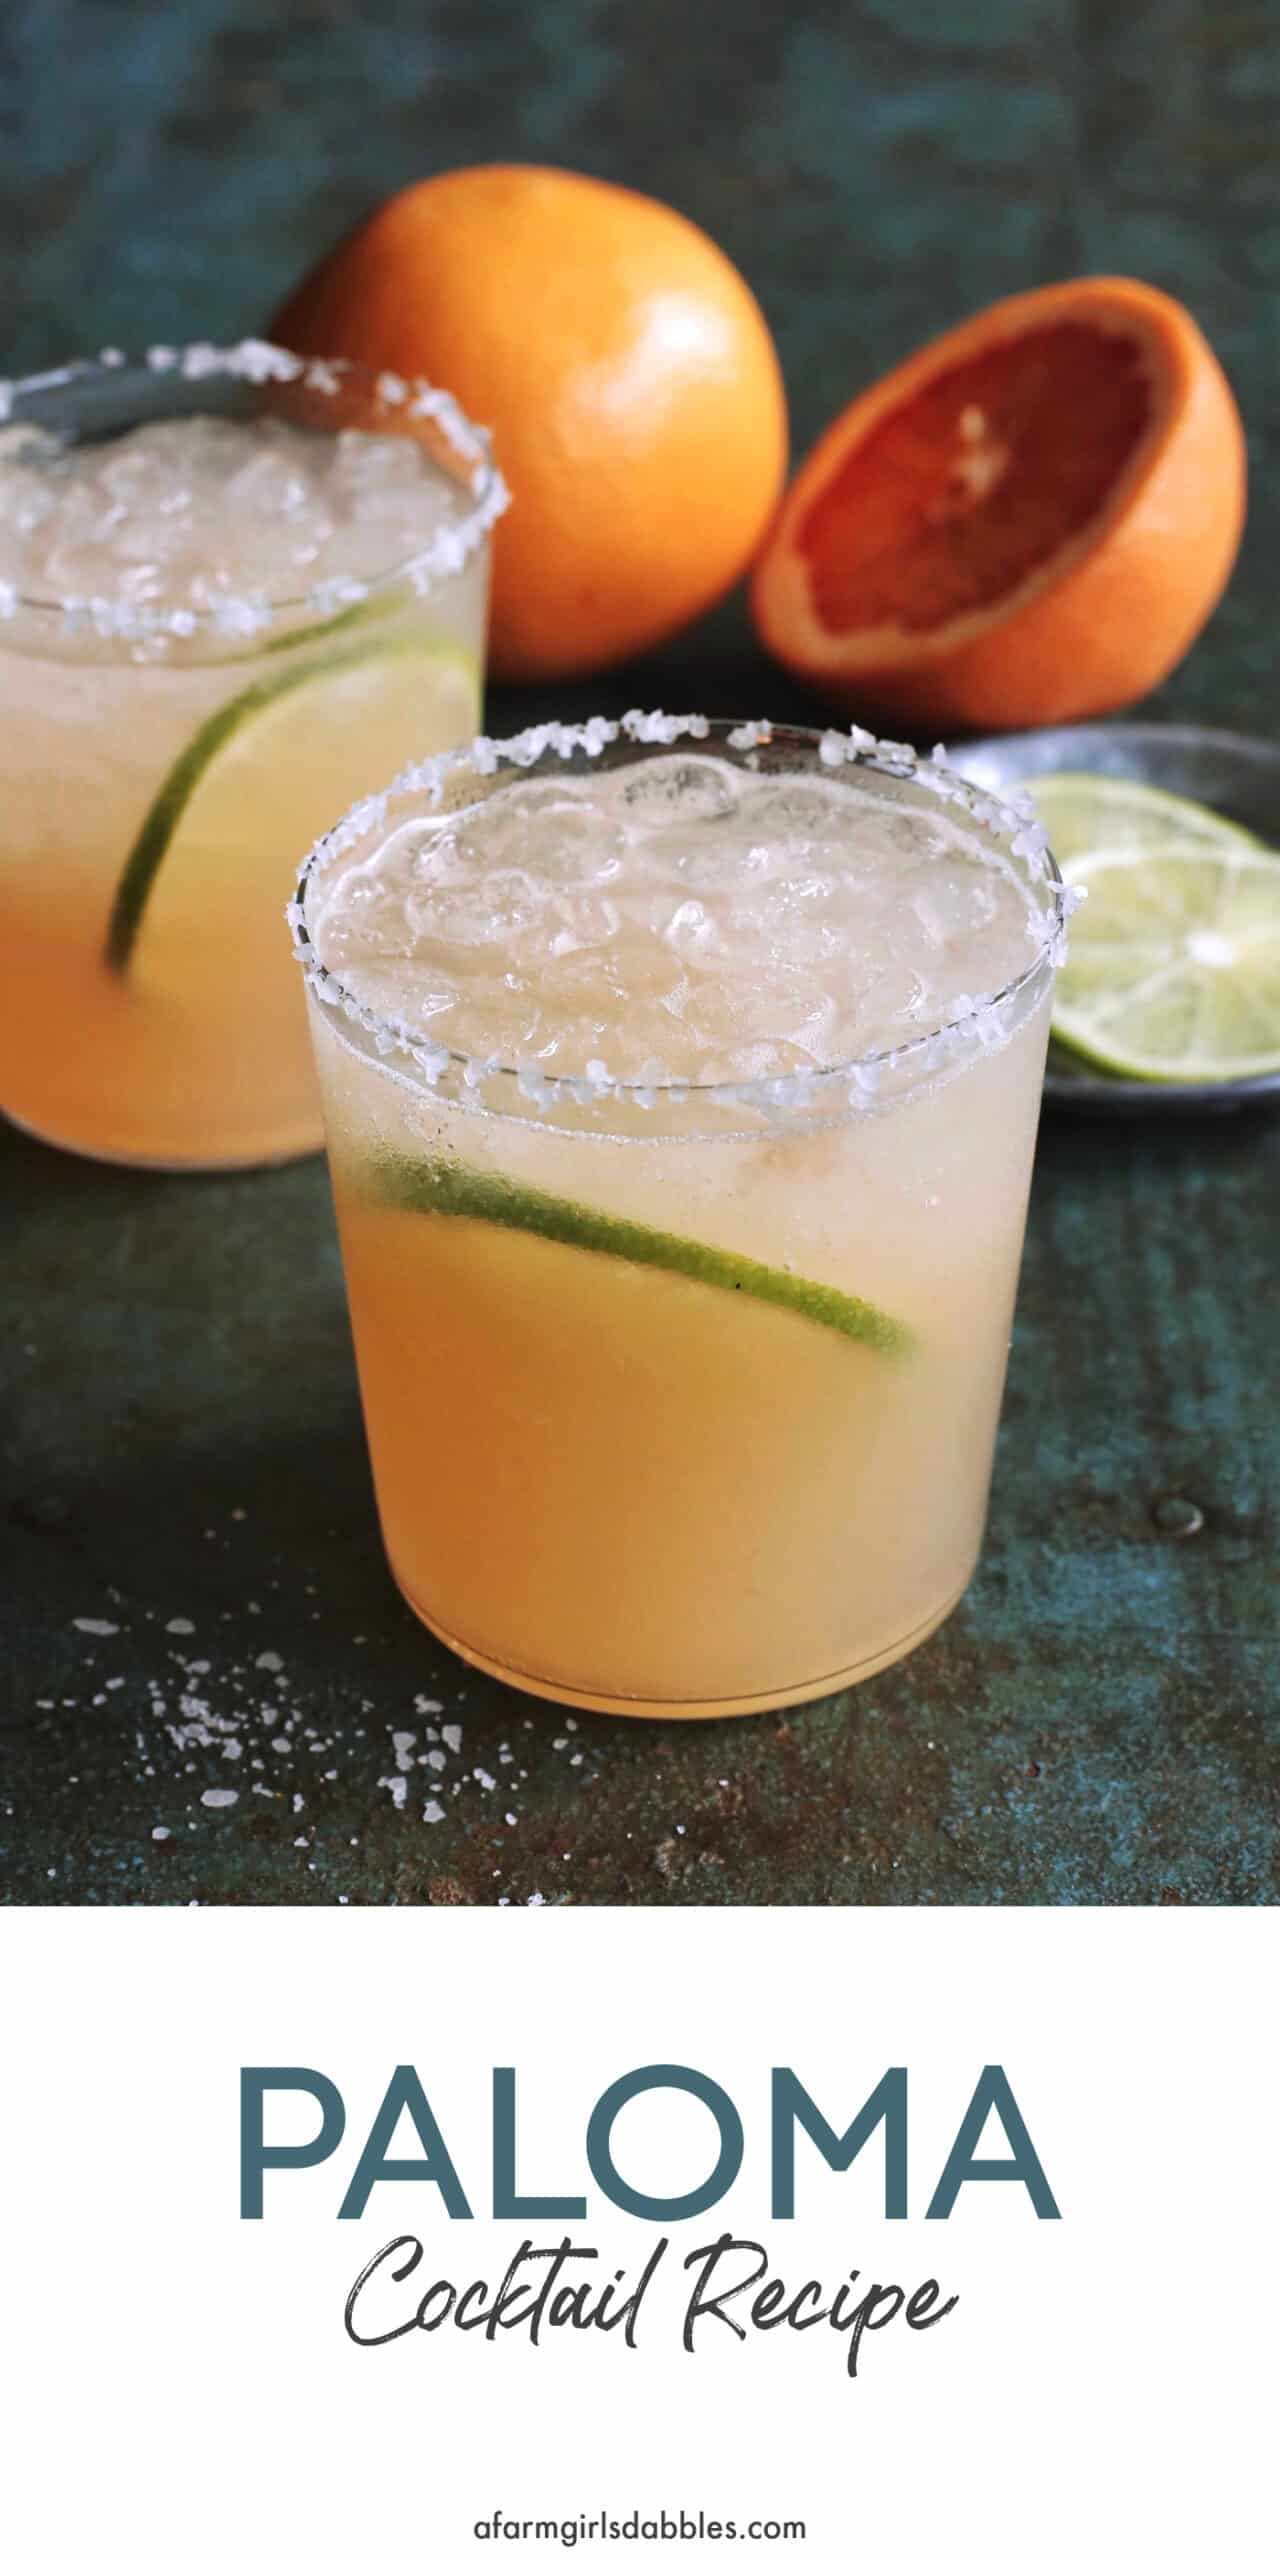 Pinterest image for Paloma Cocktail Recipe